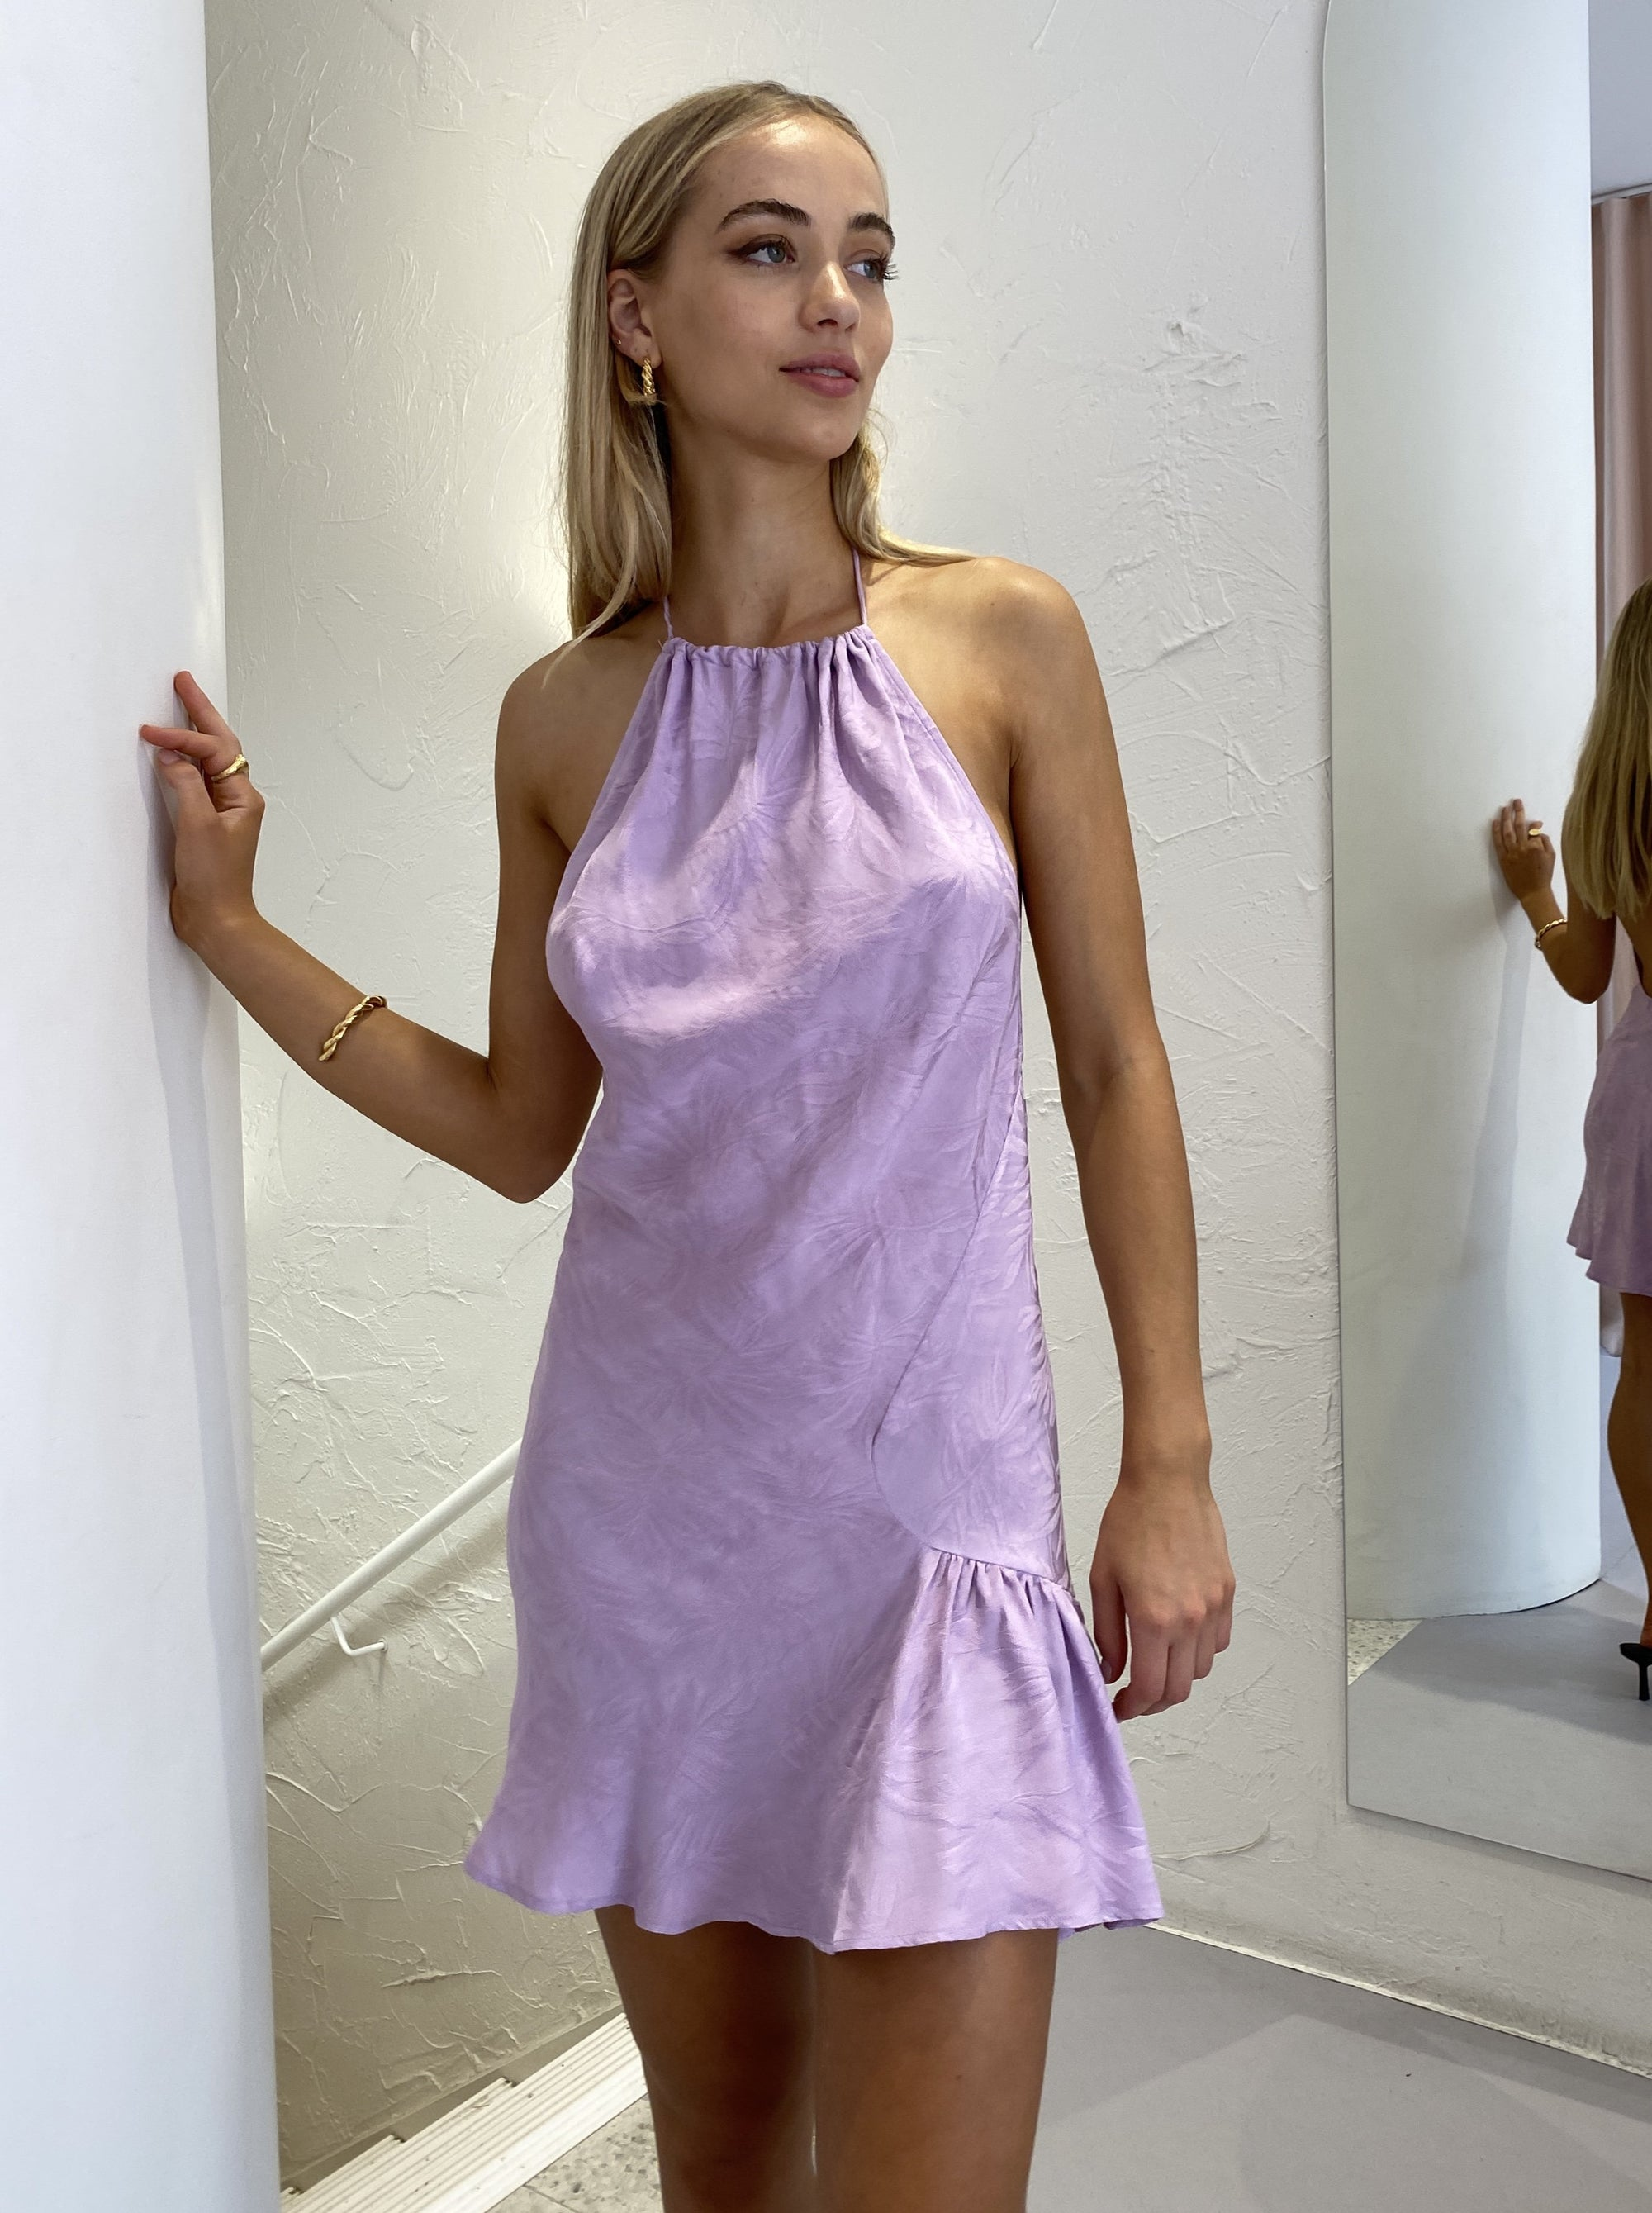 One Fell Swoop La Calafornie Mini Dress in Periwinkle Jacquard